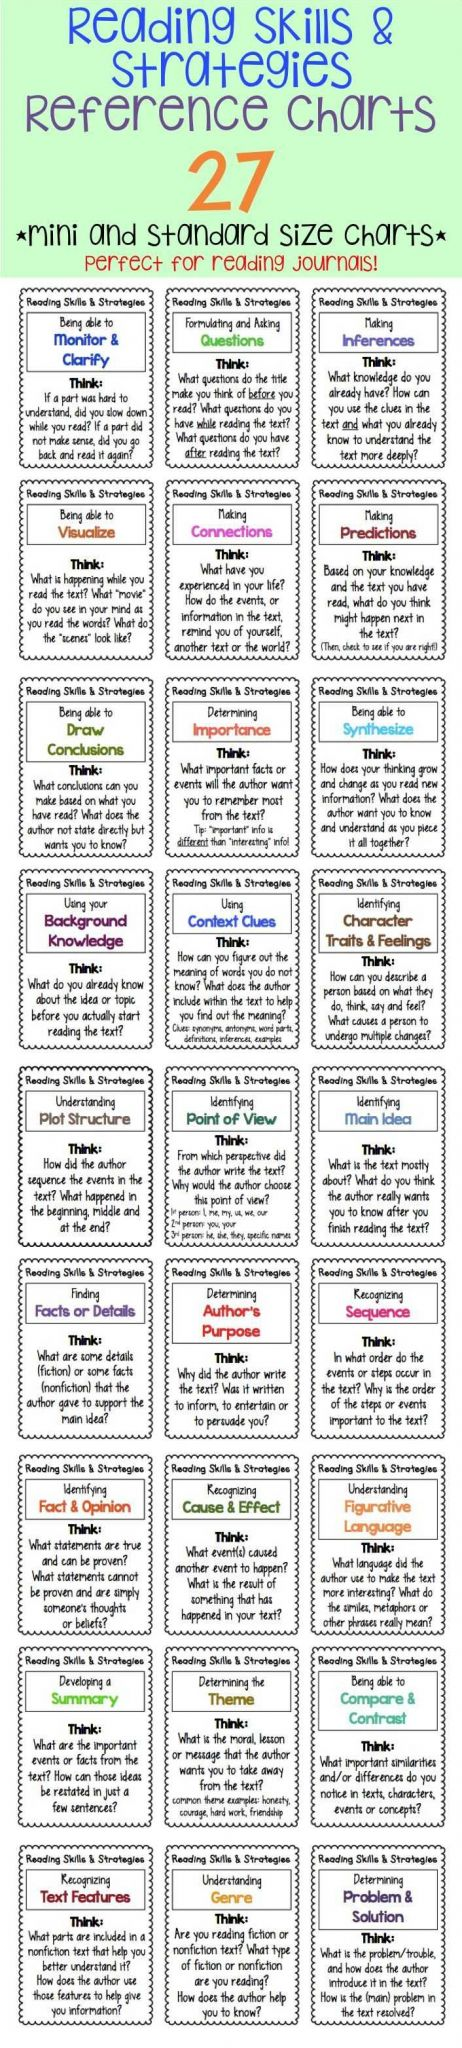 Reading Skills and Strategies Worksheet Animal Farm and 1225 Best Reading themes for Kids Images On Pinterest